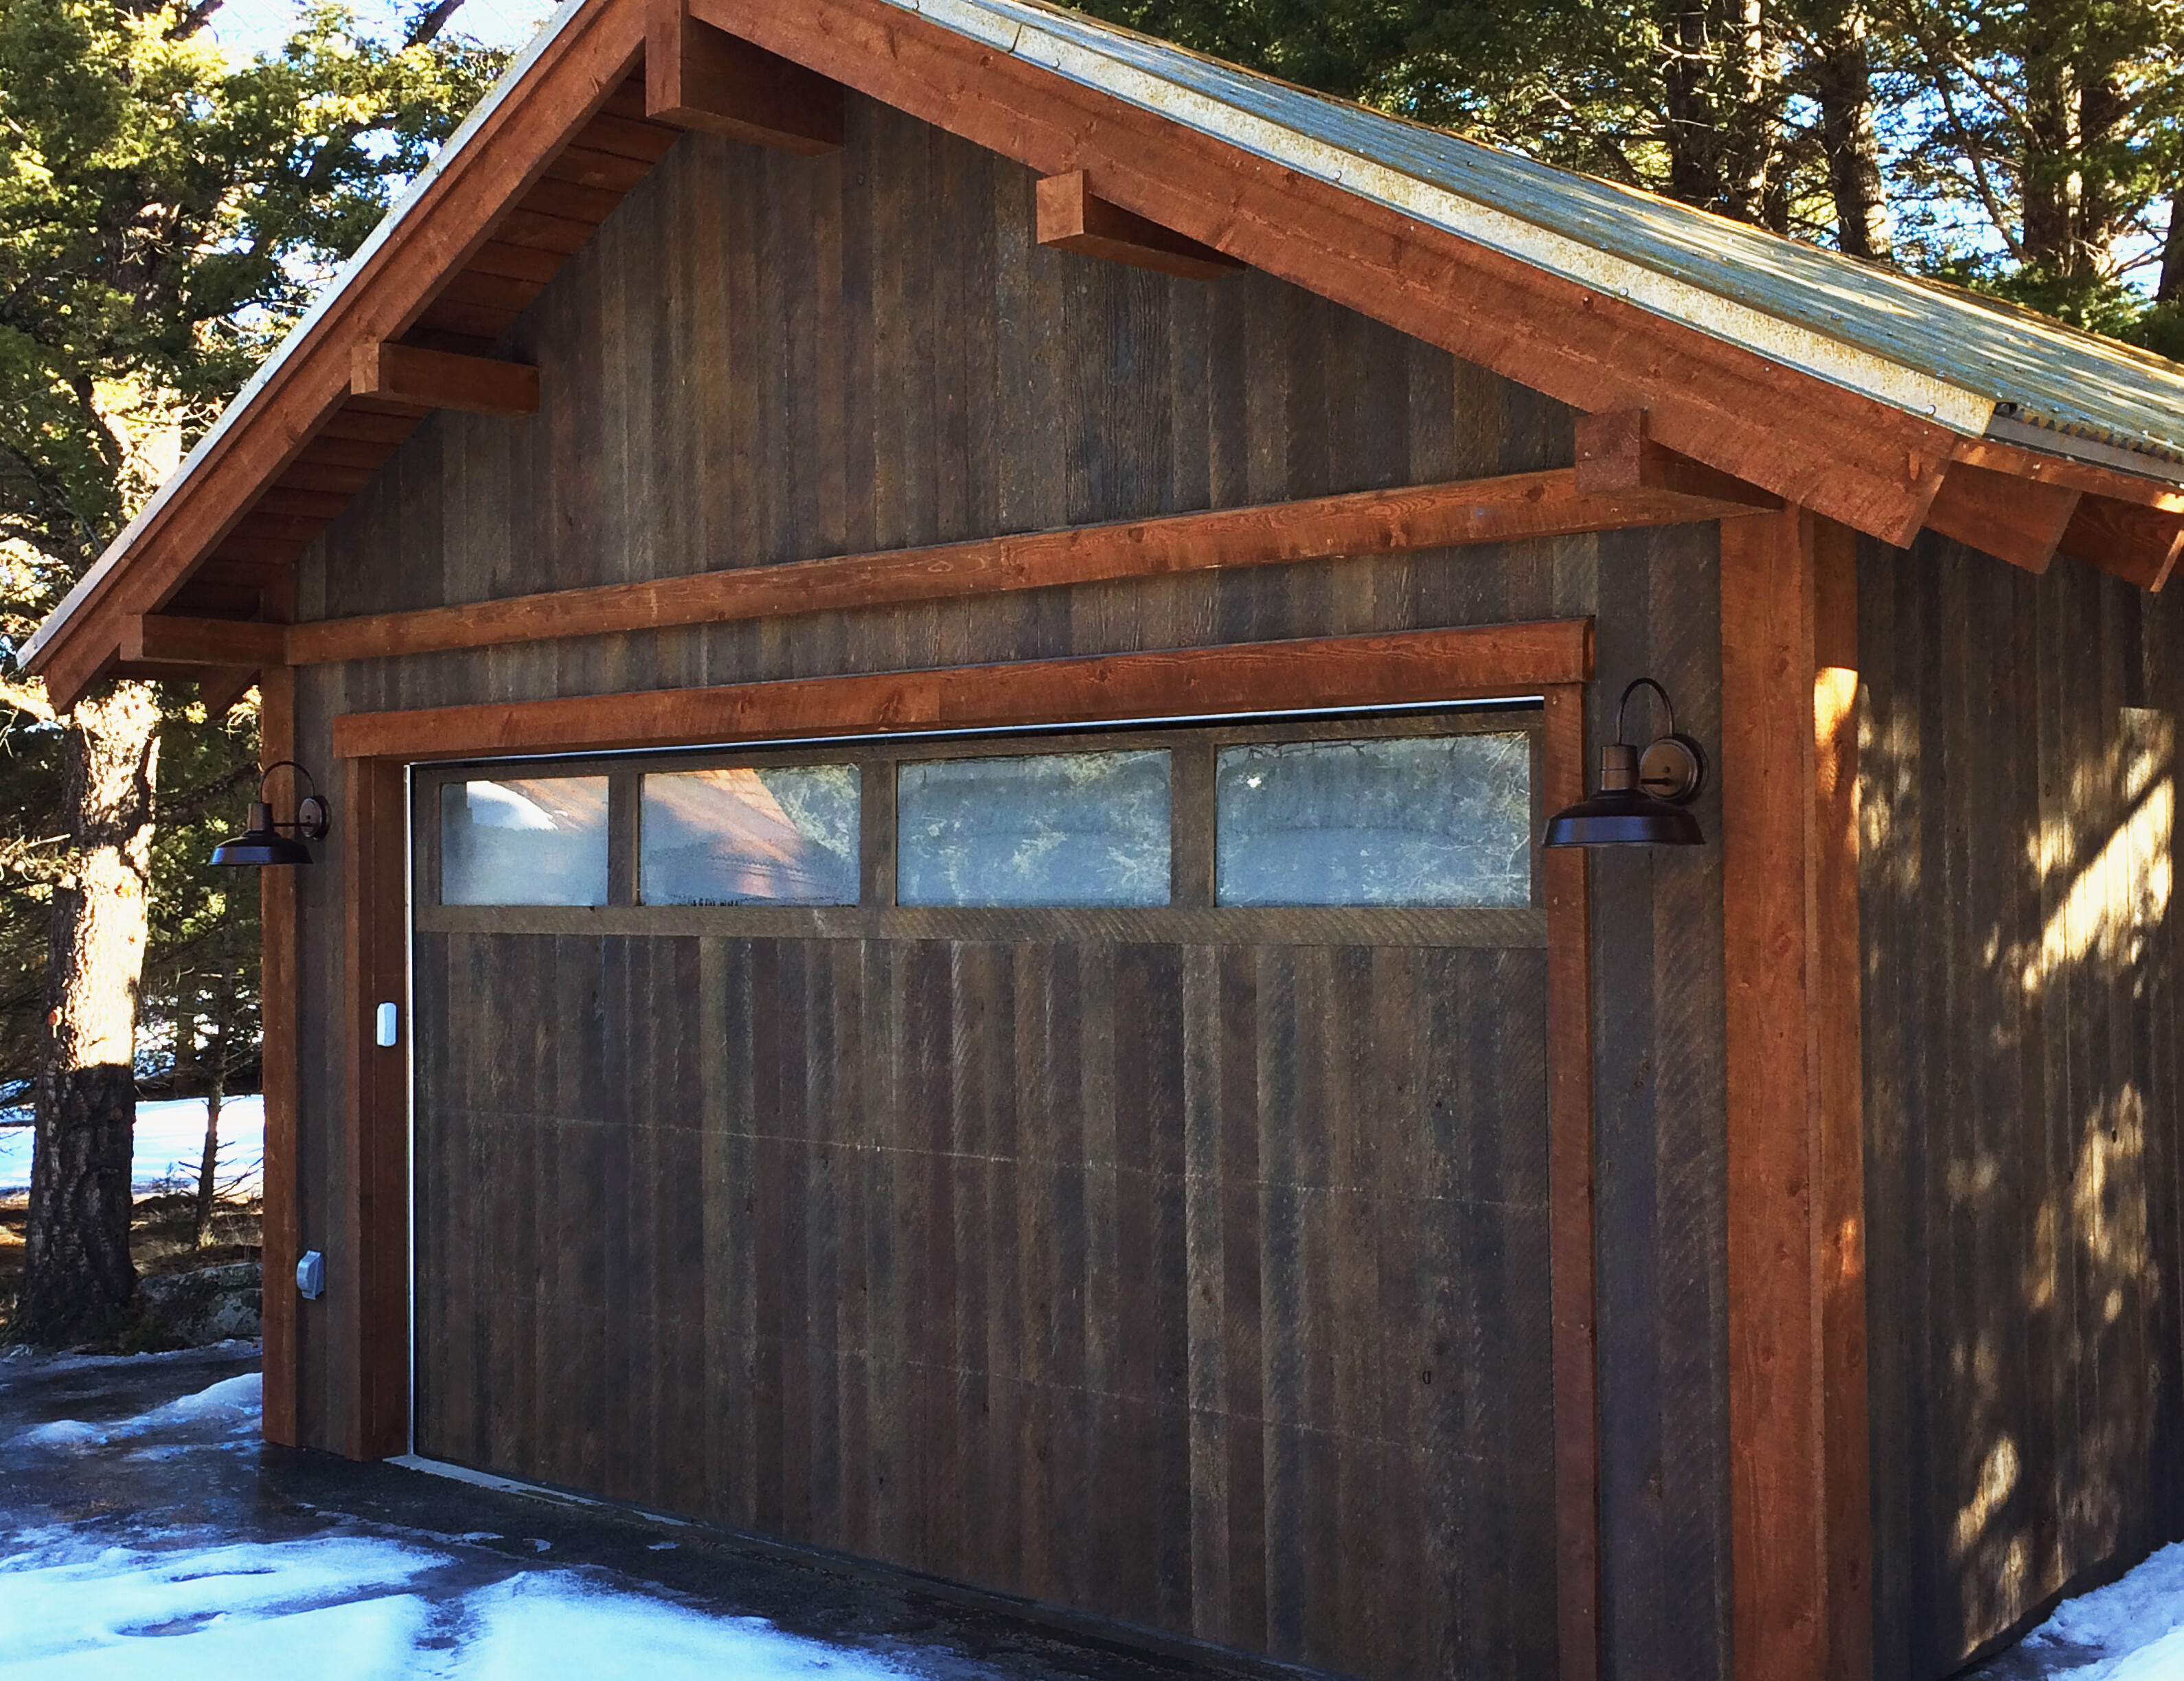 Barn wood alternative ranchwood siding and aquafir for New garage